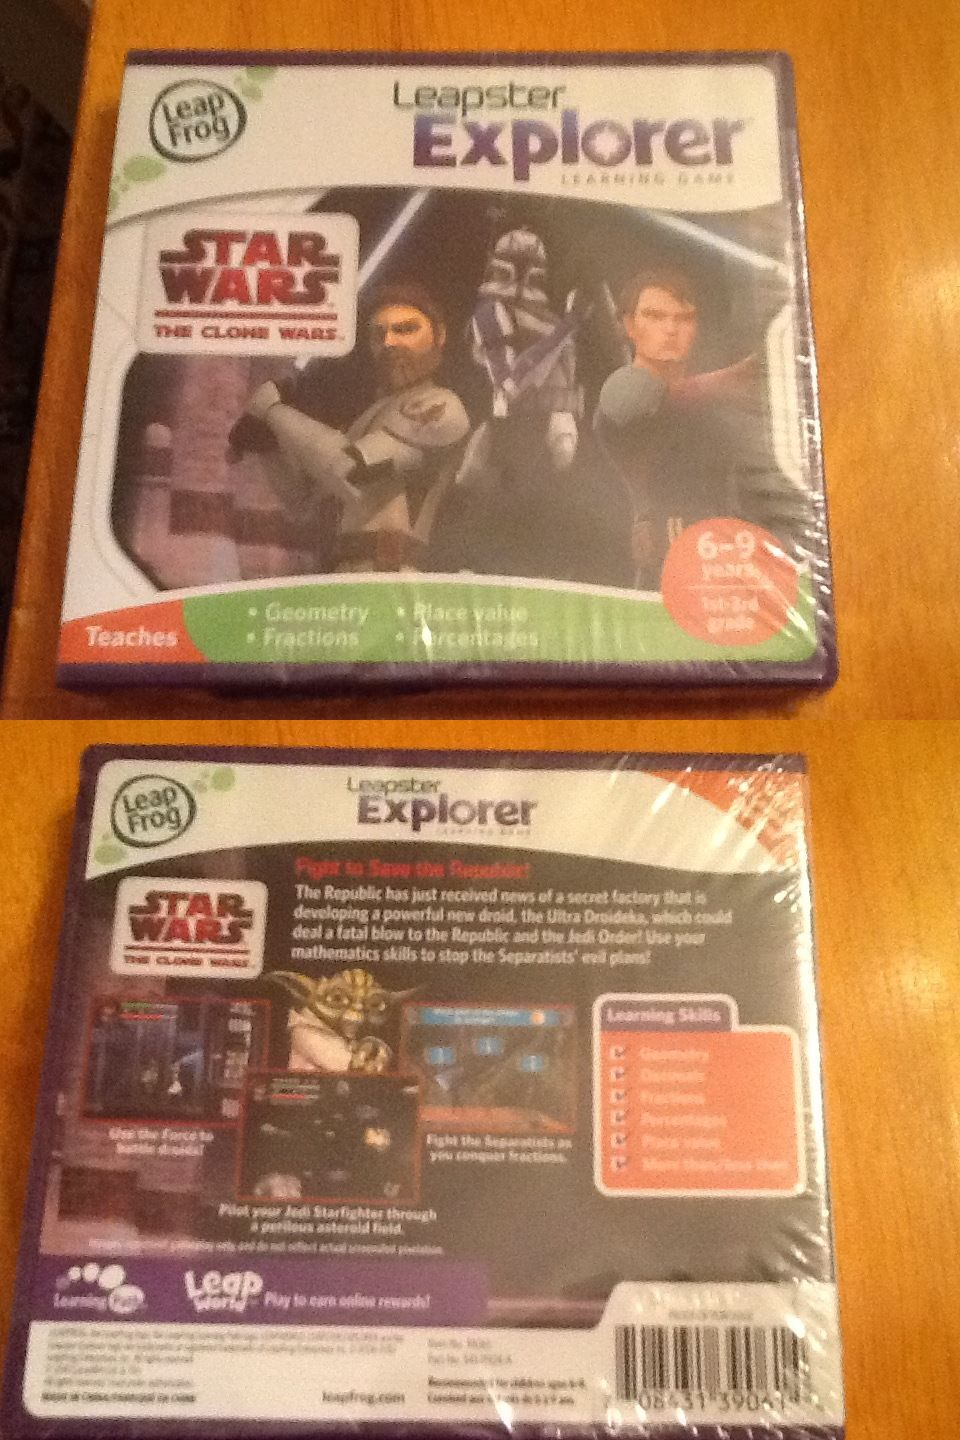 Uncategorized Star Wars Learning Games game cartridges and books 177916 star wars the clone leapster explorer learning game